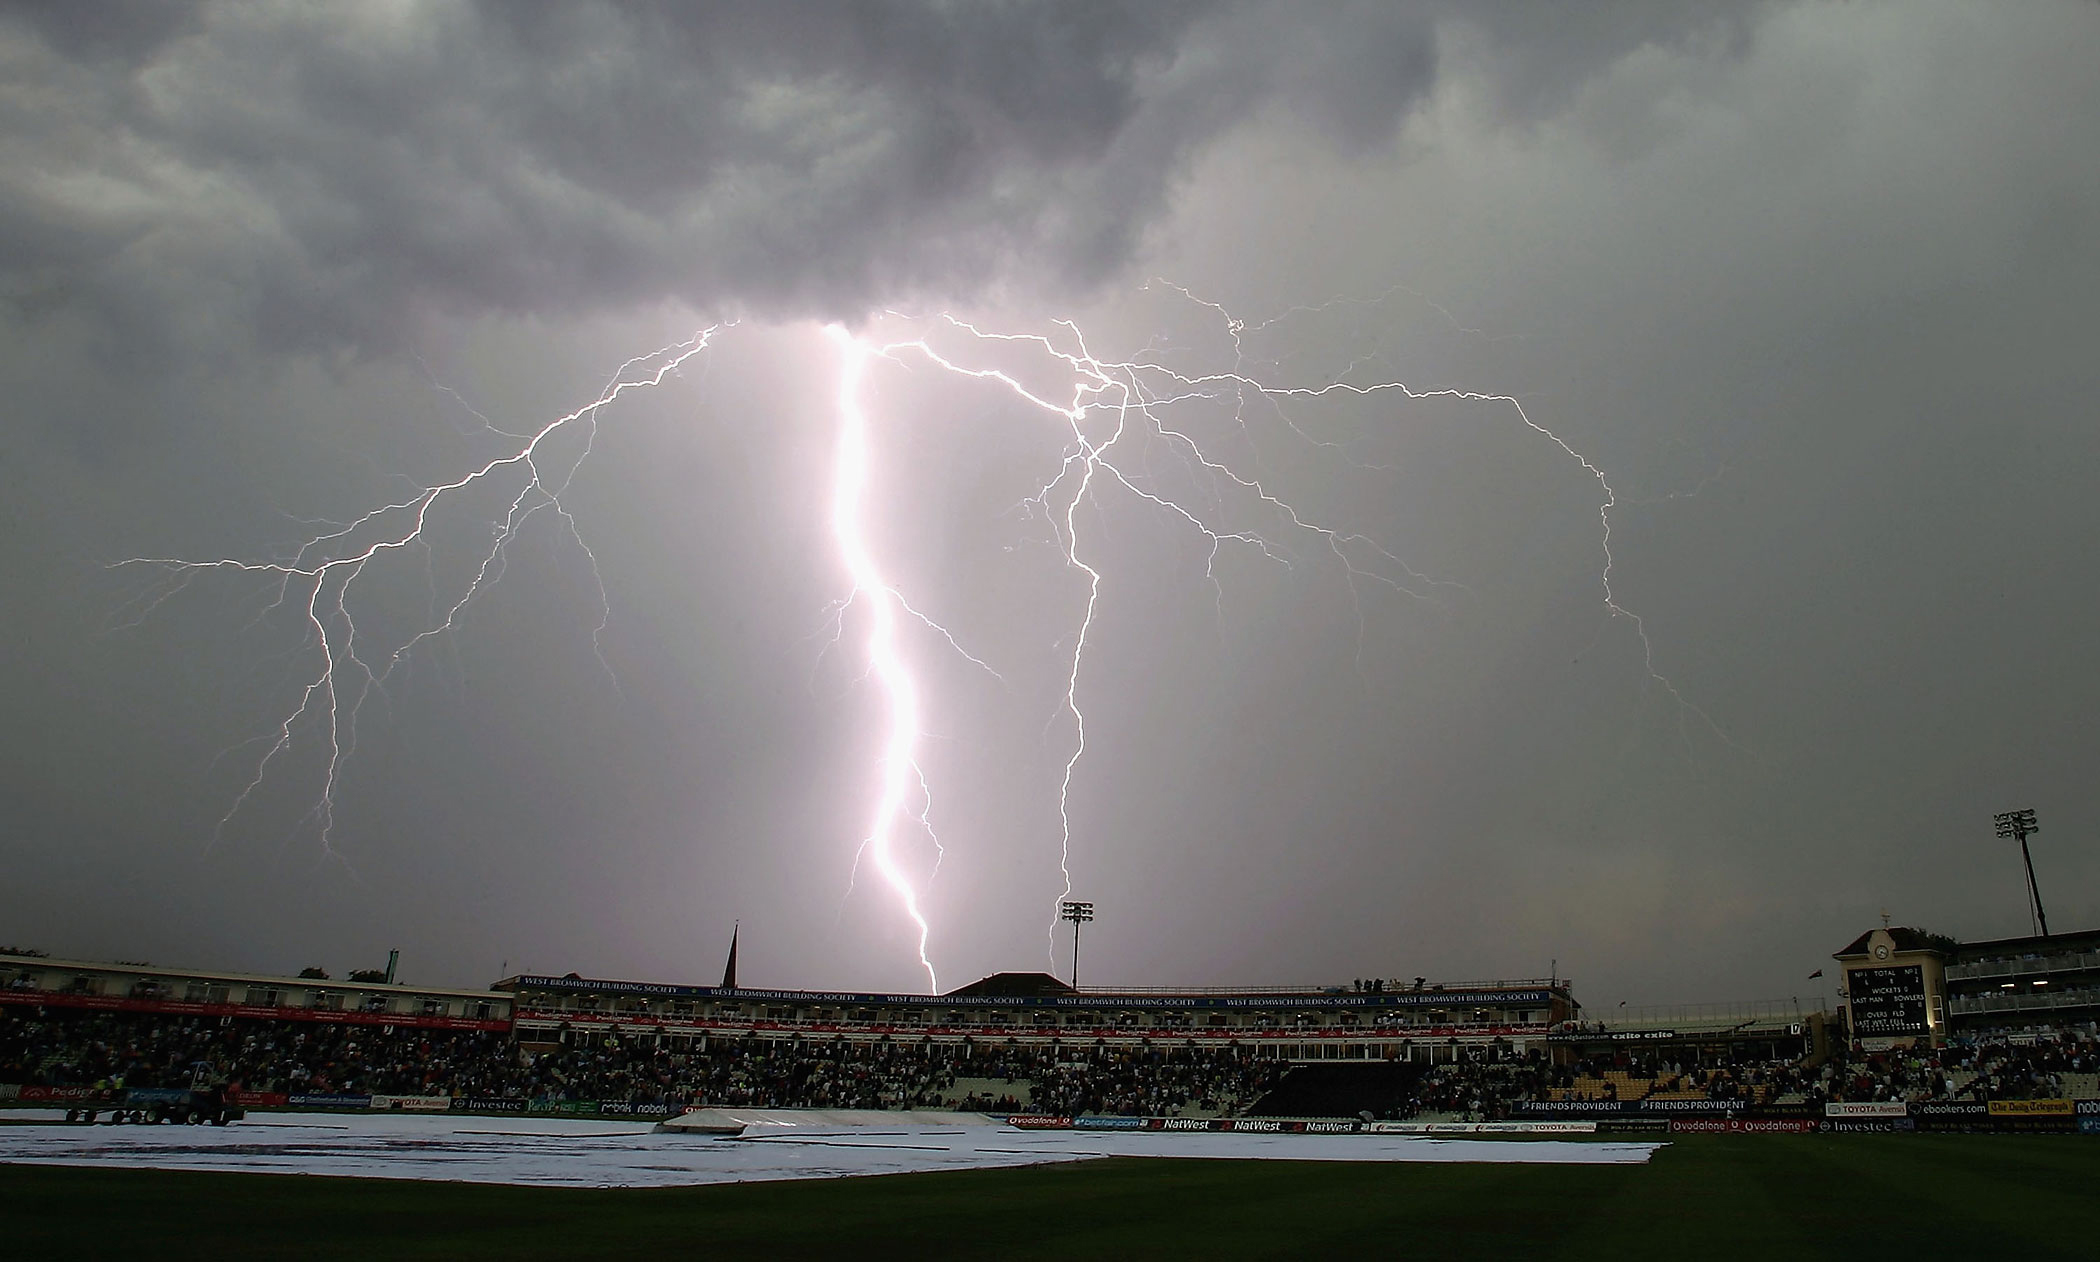 Lightning strikes as the players leave the field due to the electrical storm during the NatWest Series One Day International between England and Australia played at Edgbaston in Birmingham, United Kingdom, June 28, 2005.